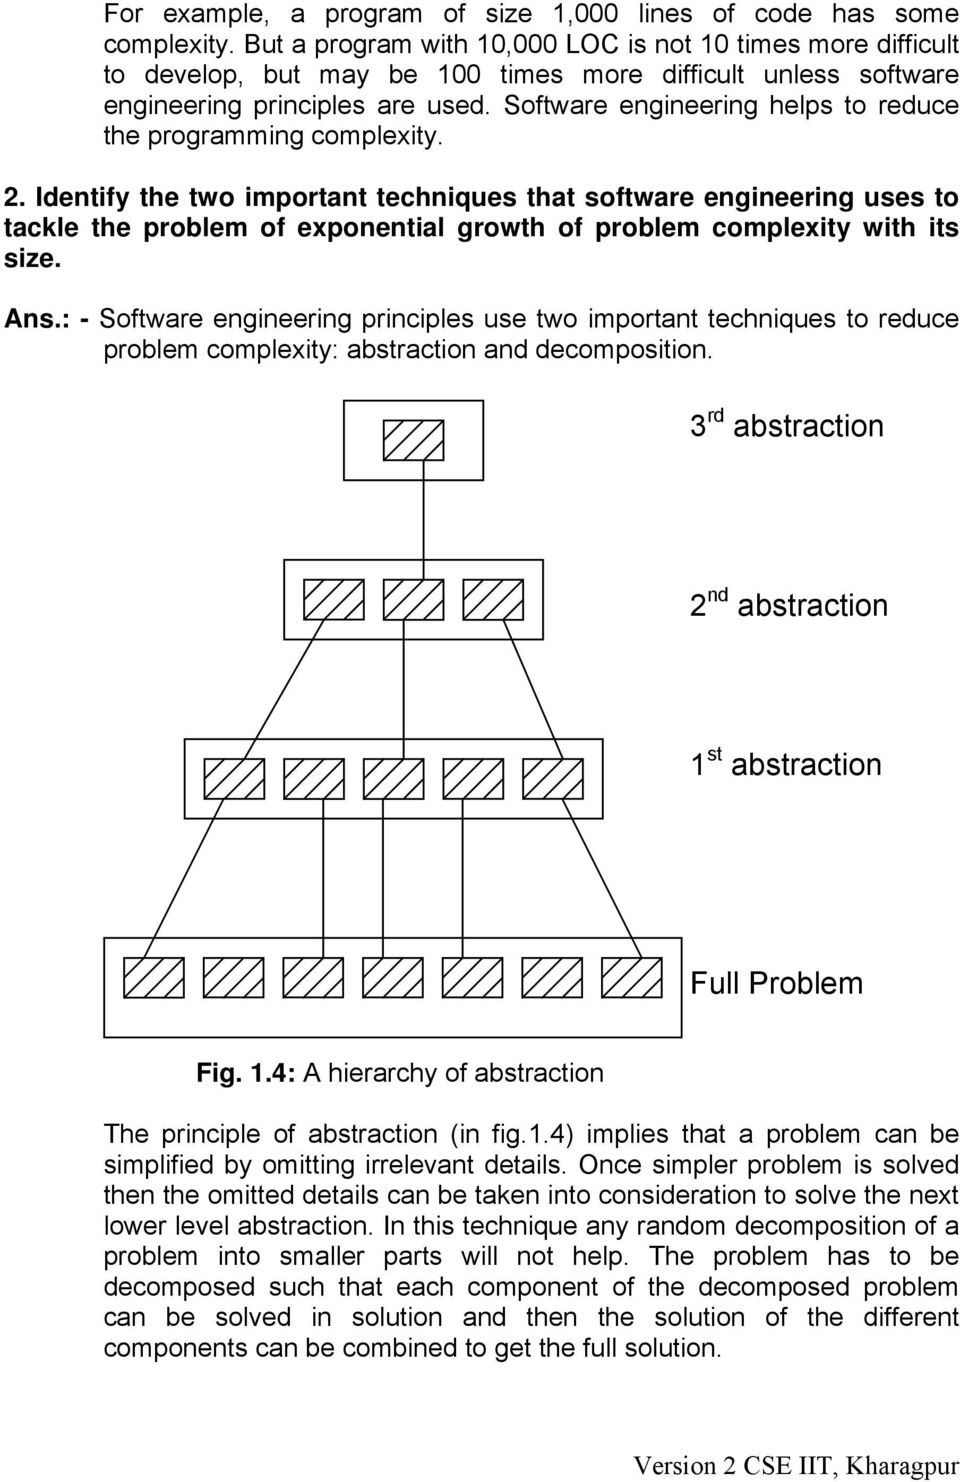 Software engineering helps to reduce the programming complexity. 2.